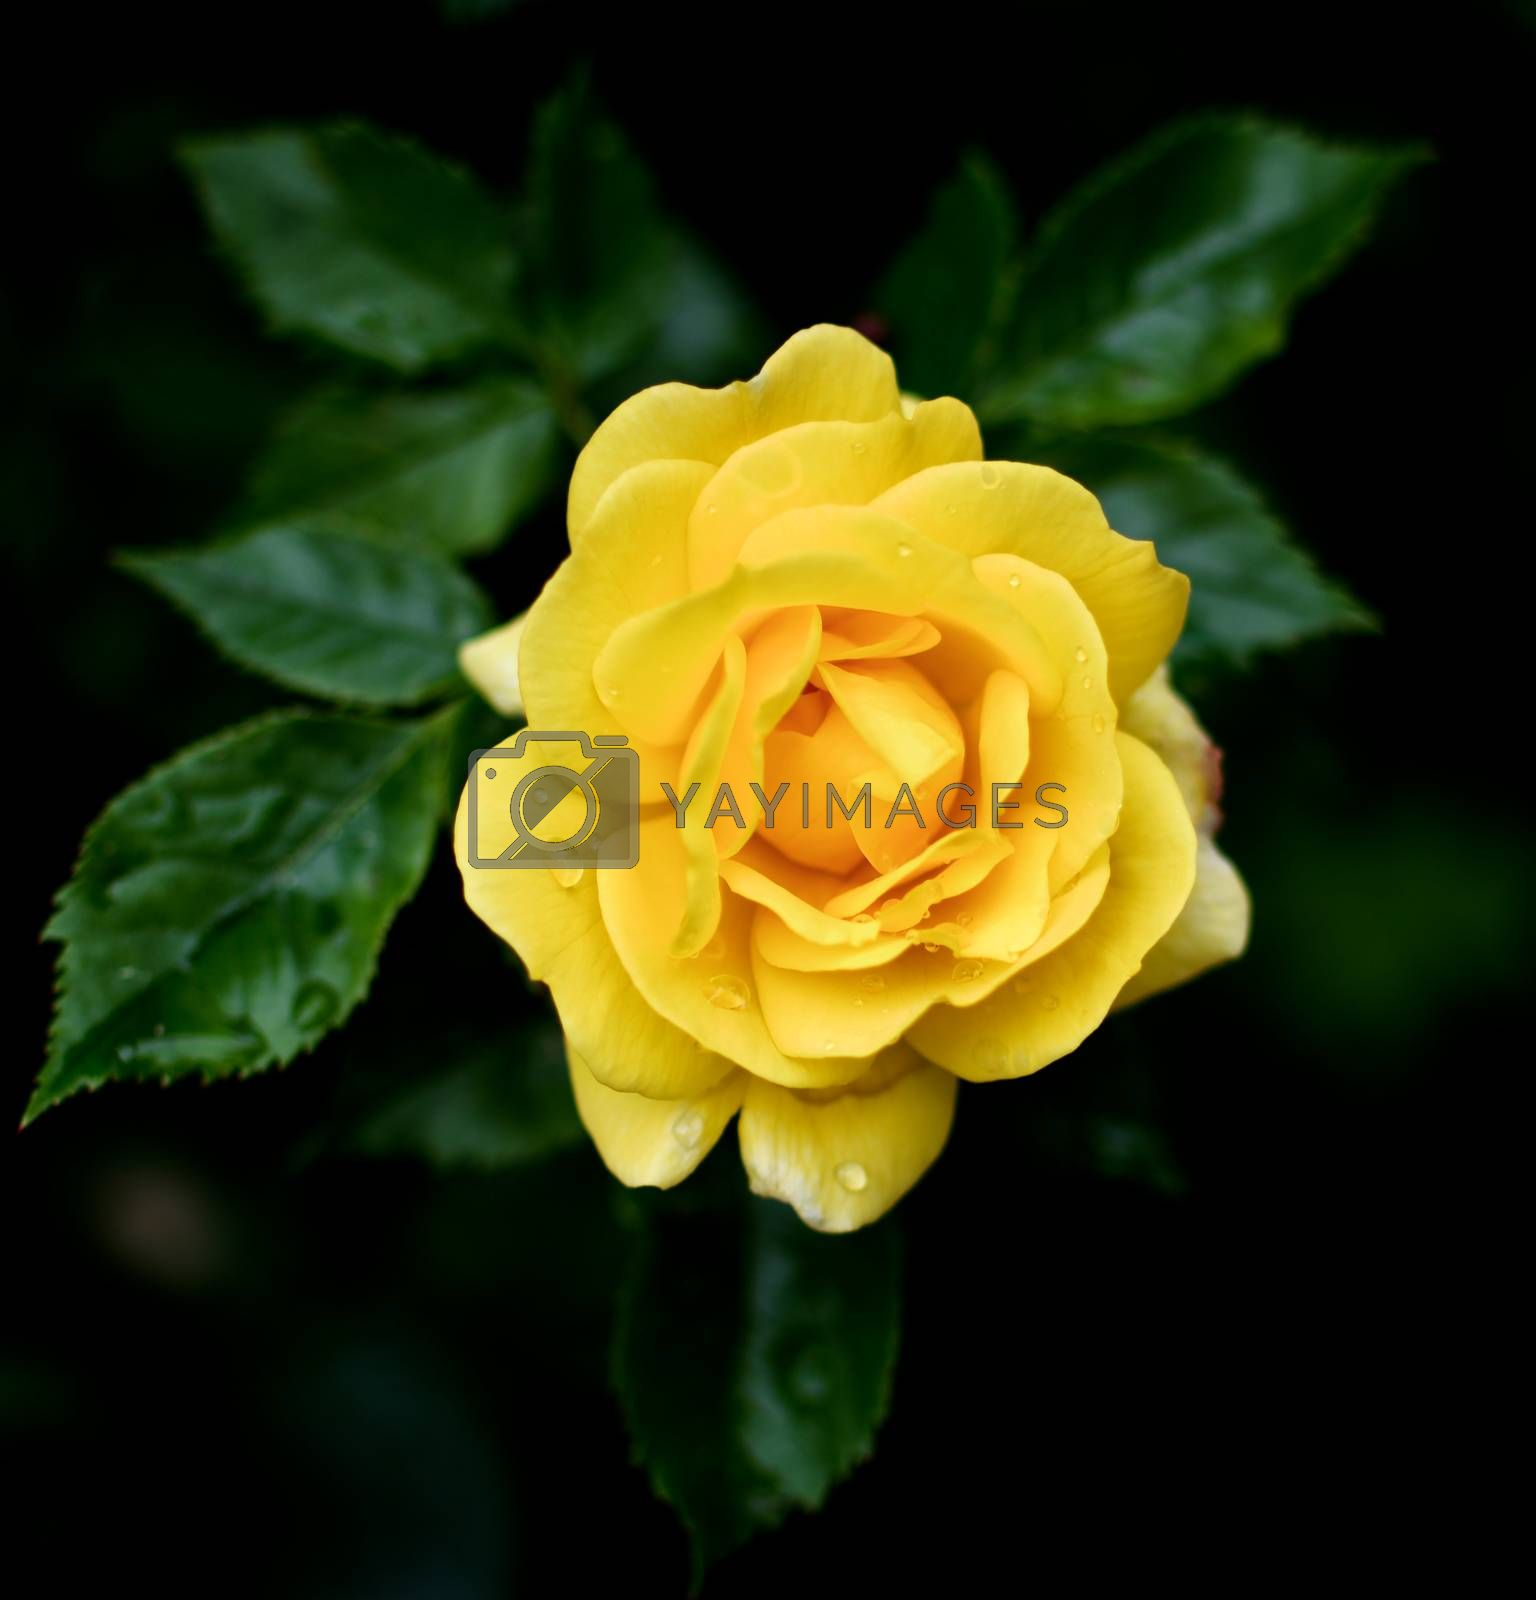 Perfect Single Yellow Rose with Leafs and Water Drops closeup on Blurred Natural background Outdoors. Focus on Centre of Petals